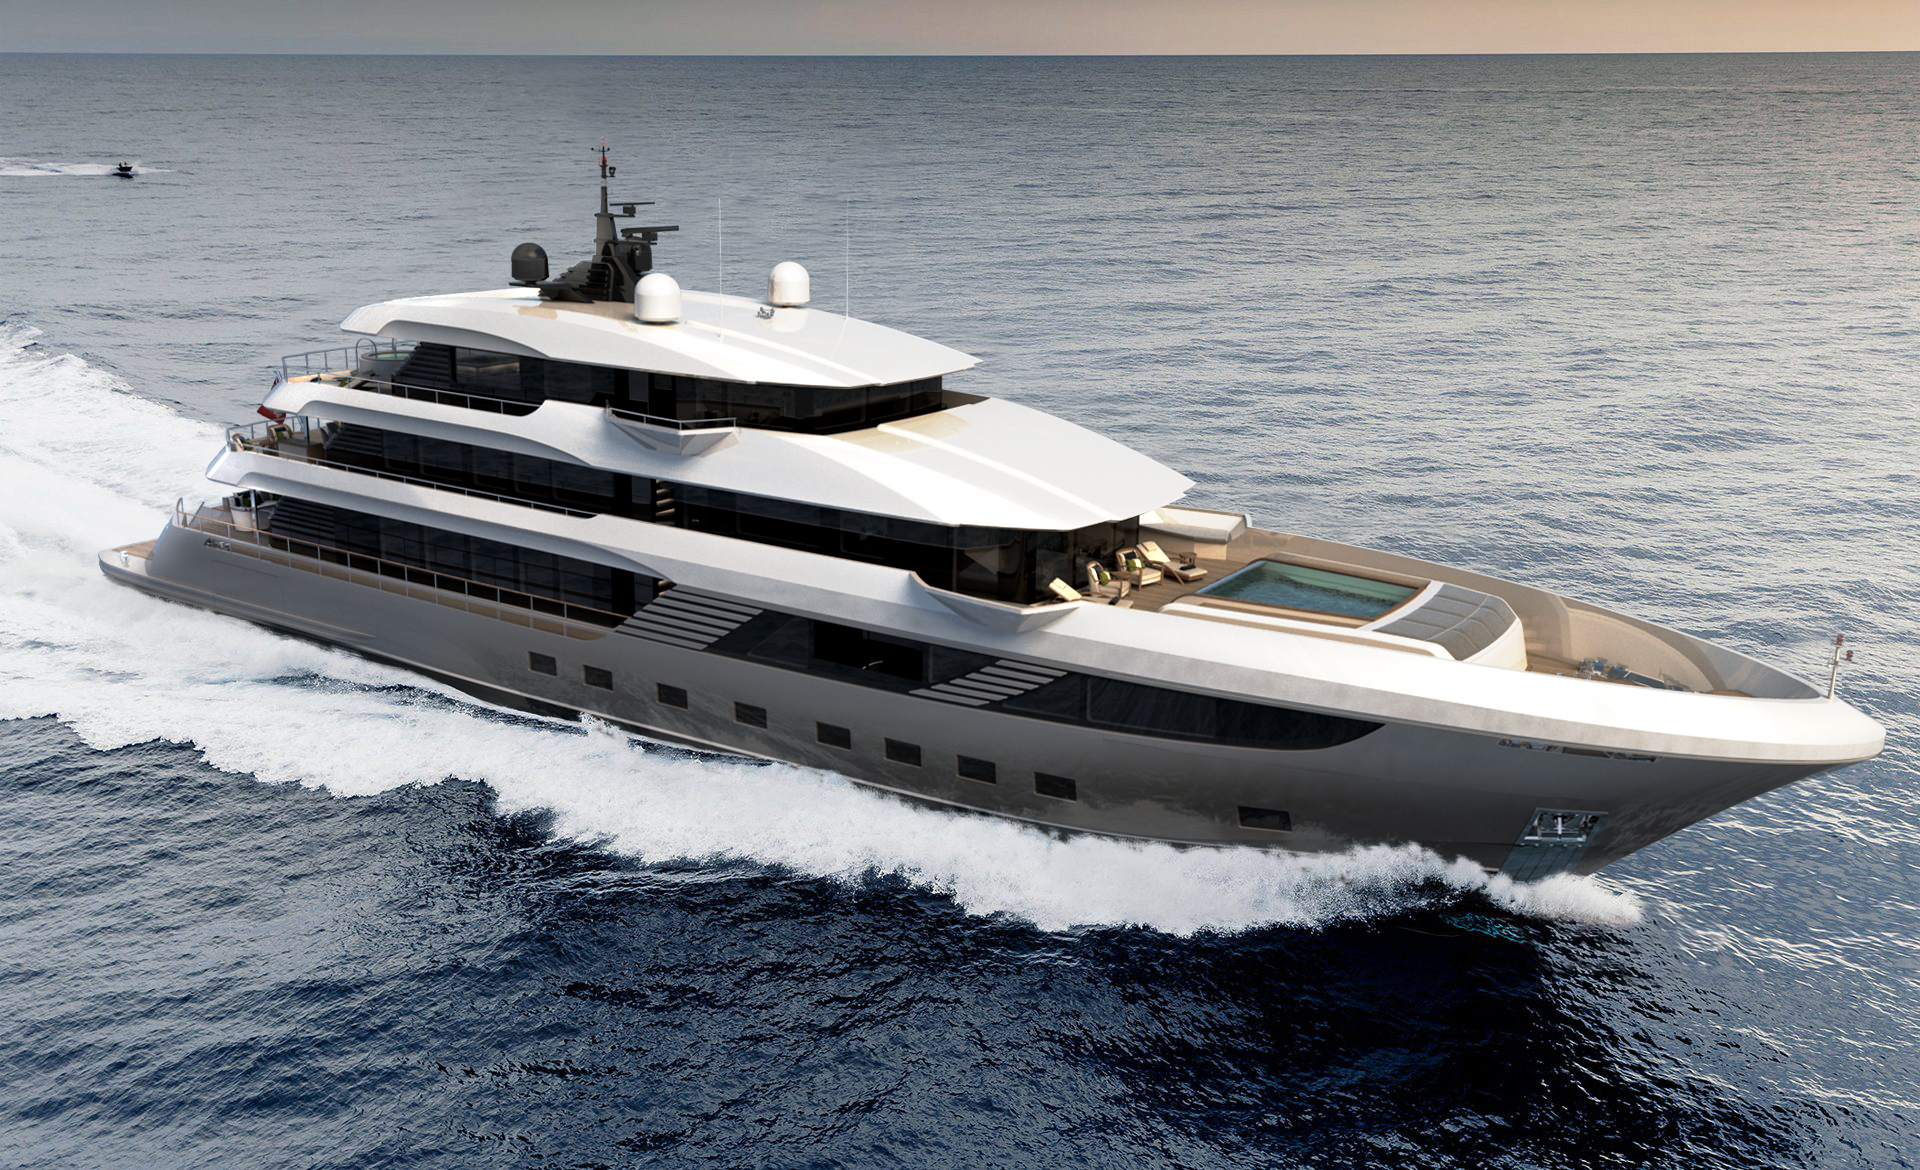 Majesty 175 - by Majesty Superyachts - Drettmann Yachts